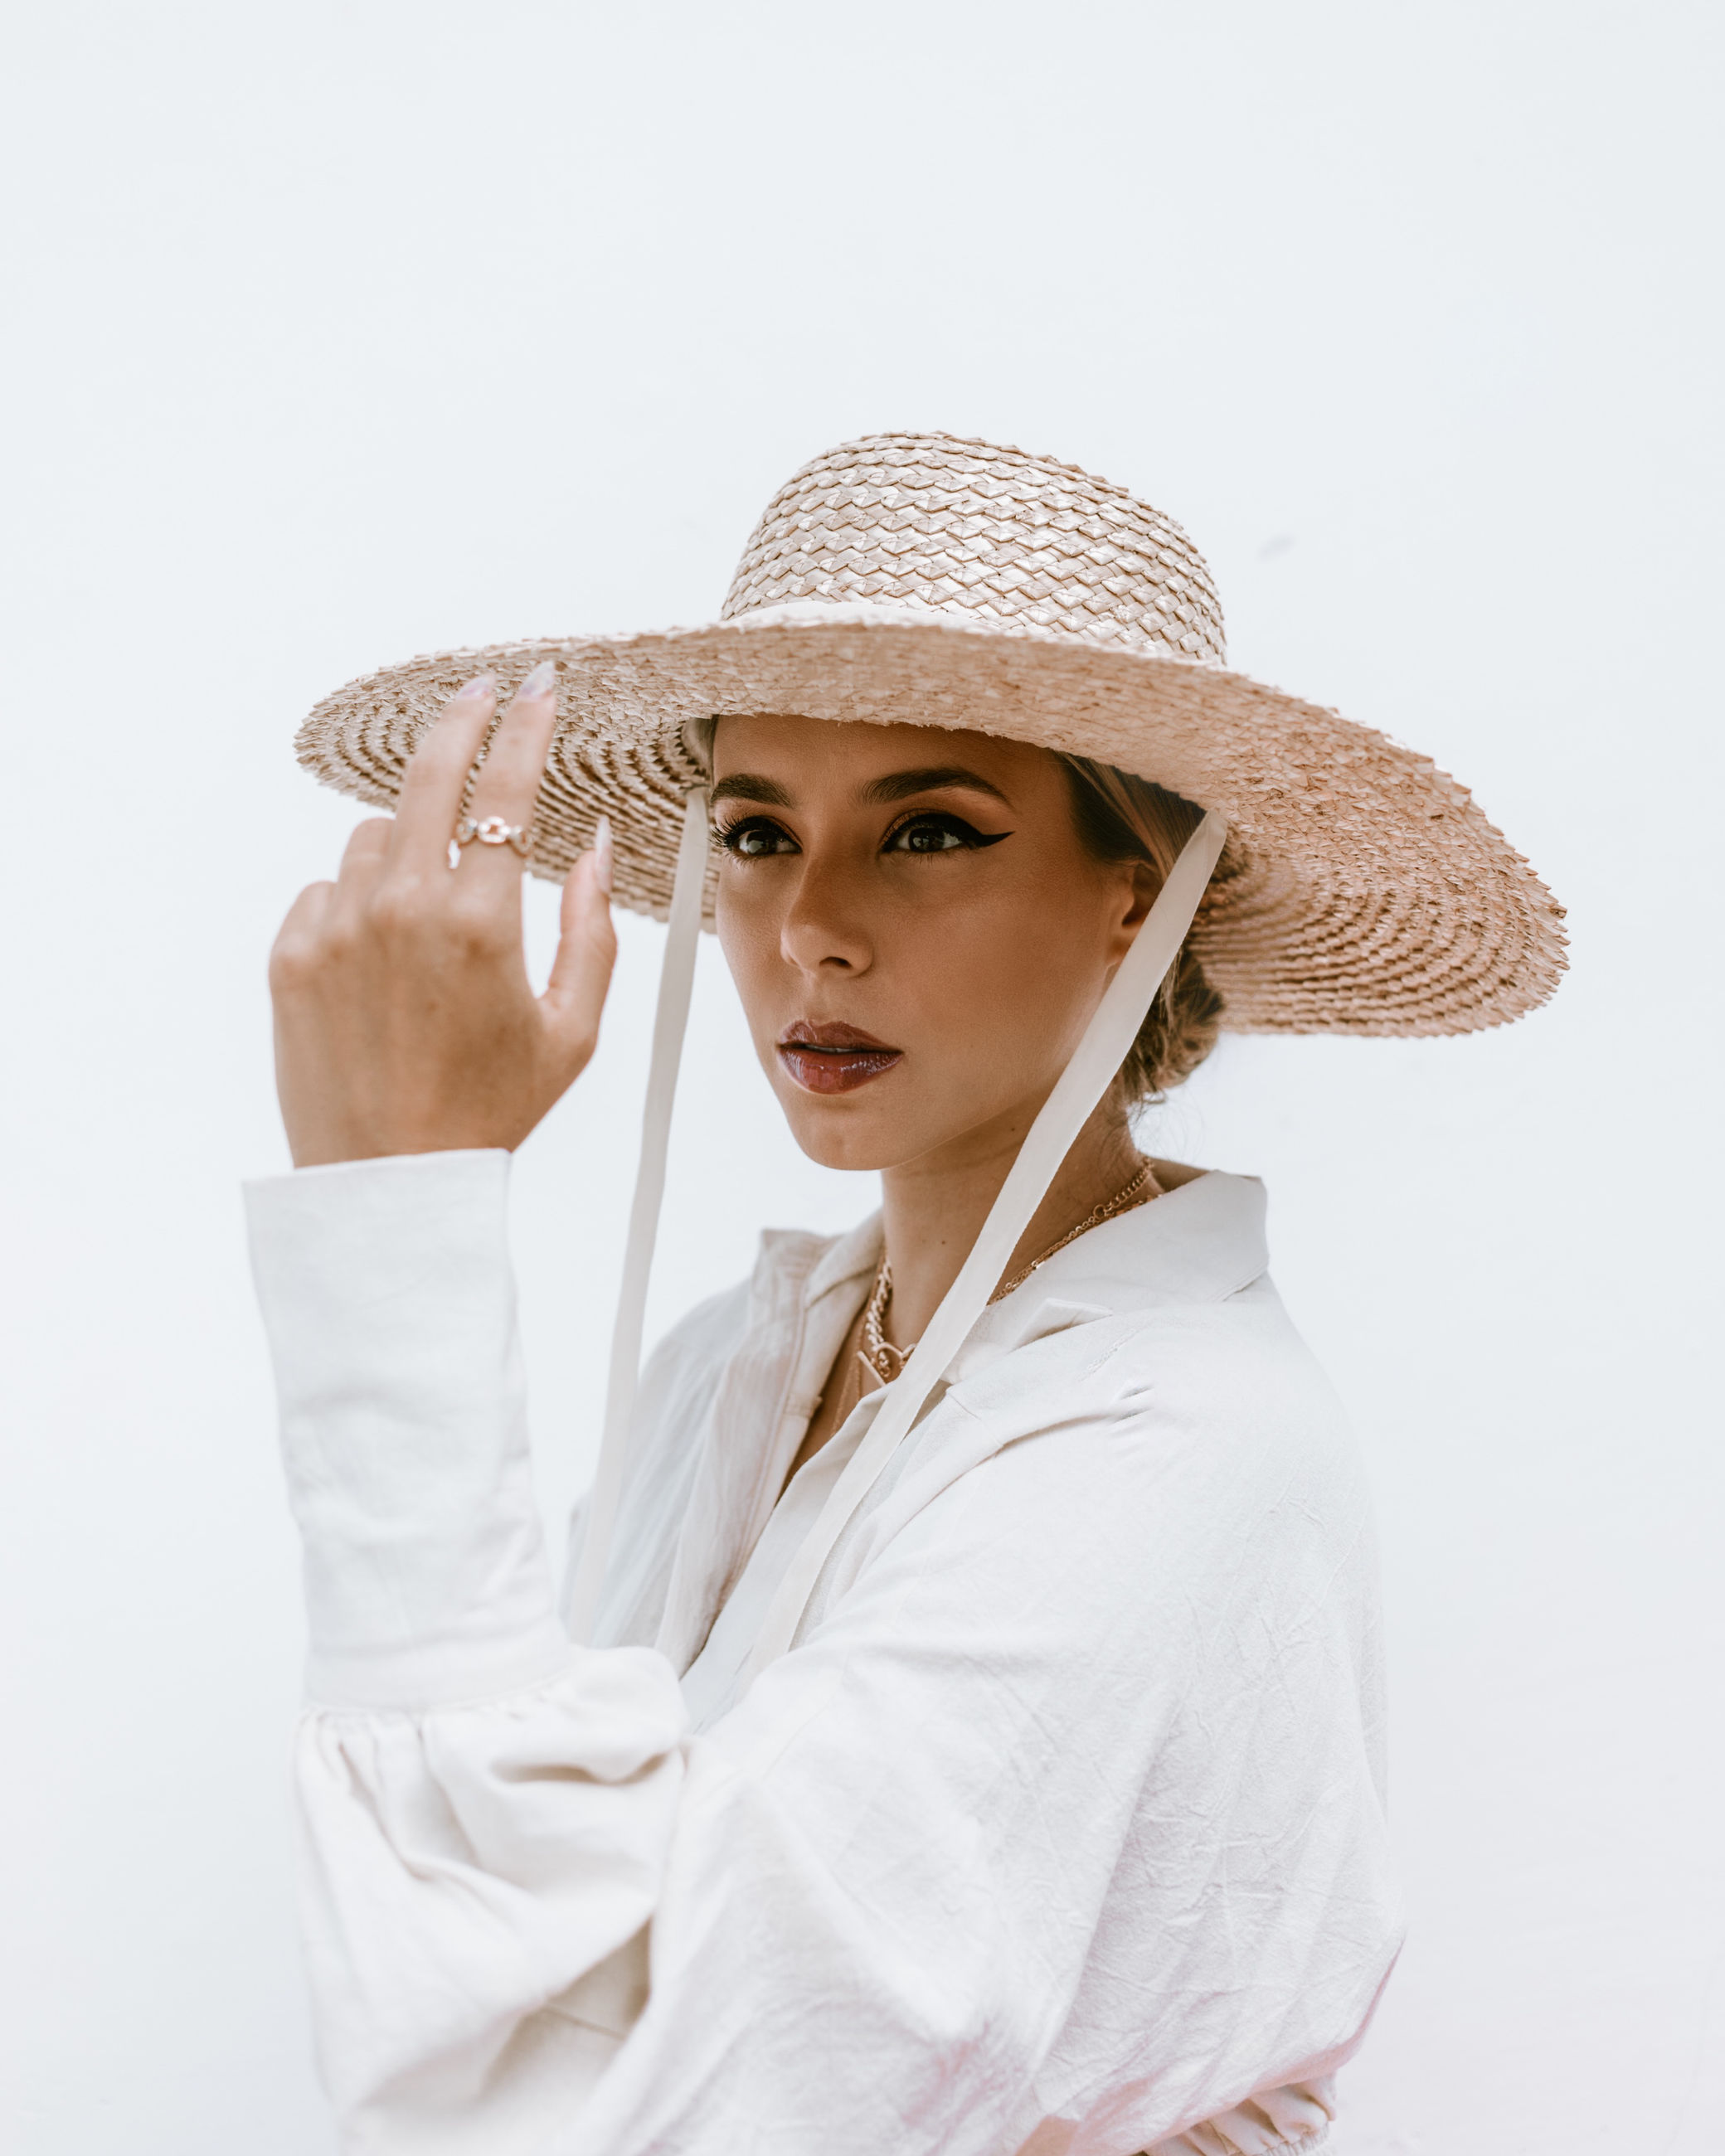 one person, hat, clothing, adult, portrait, women, sun hat, studio shot, waist up, indoors, cap, young adult, female, person, looking at camera, white background, straw hat, occupation, white, human face, fashion accessory, holding, looking, headgear, lifestyles, standing, fashion, spring